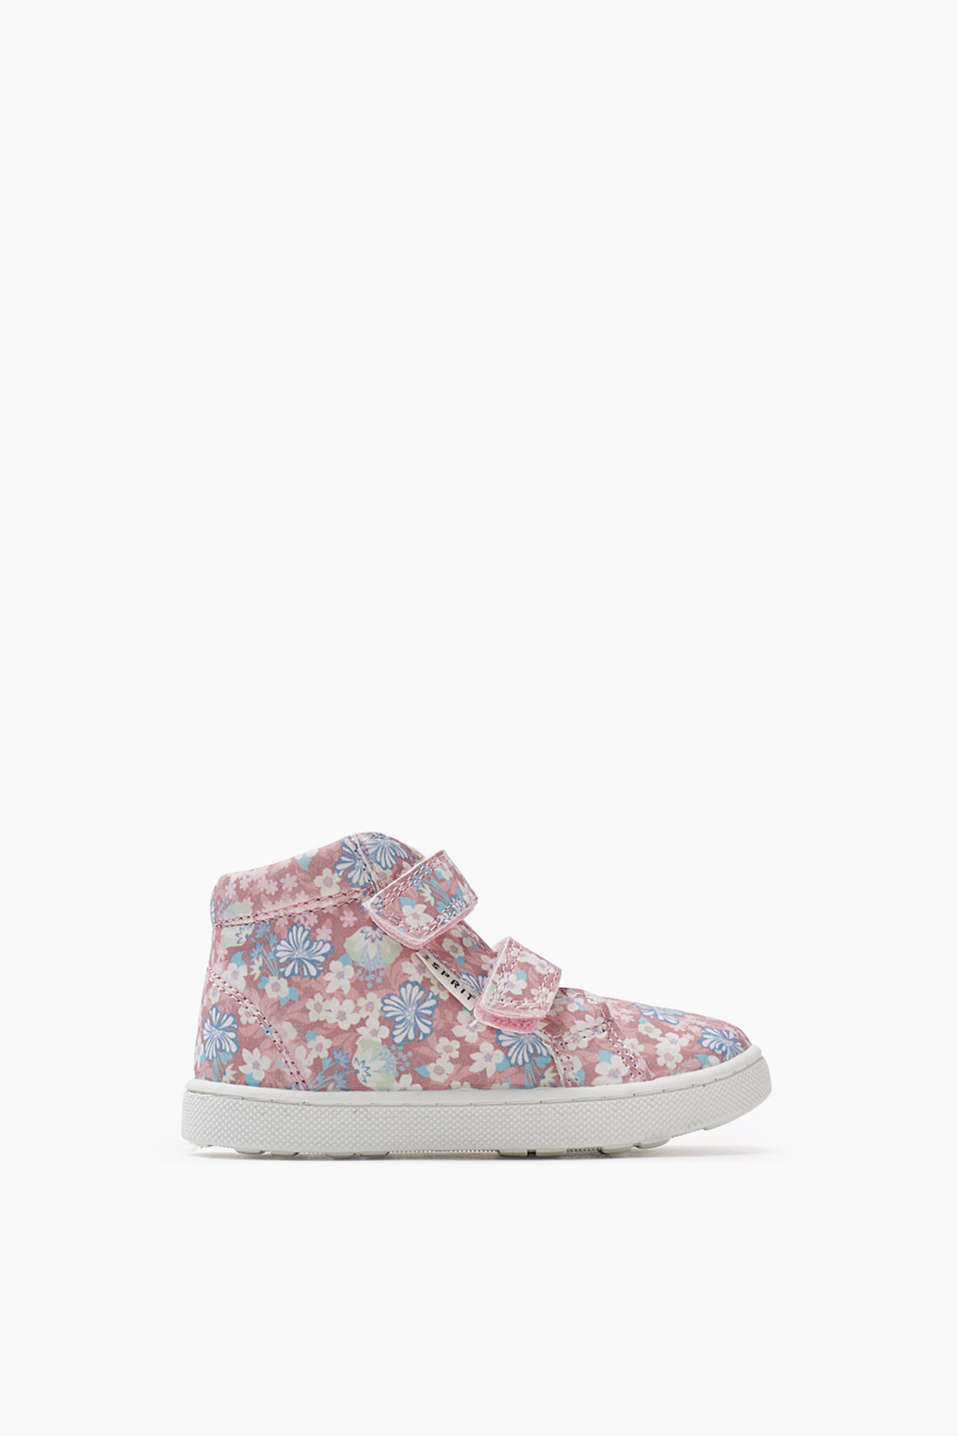 Velcro fastening high-tops in a pretty floral pattern